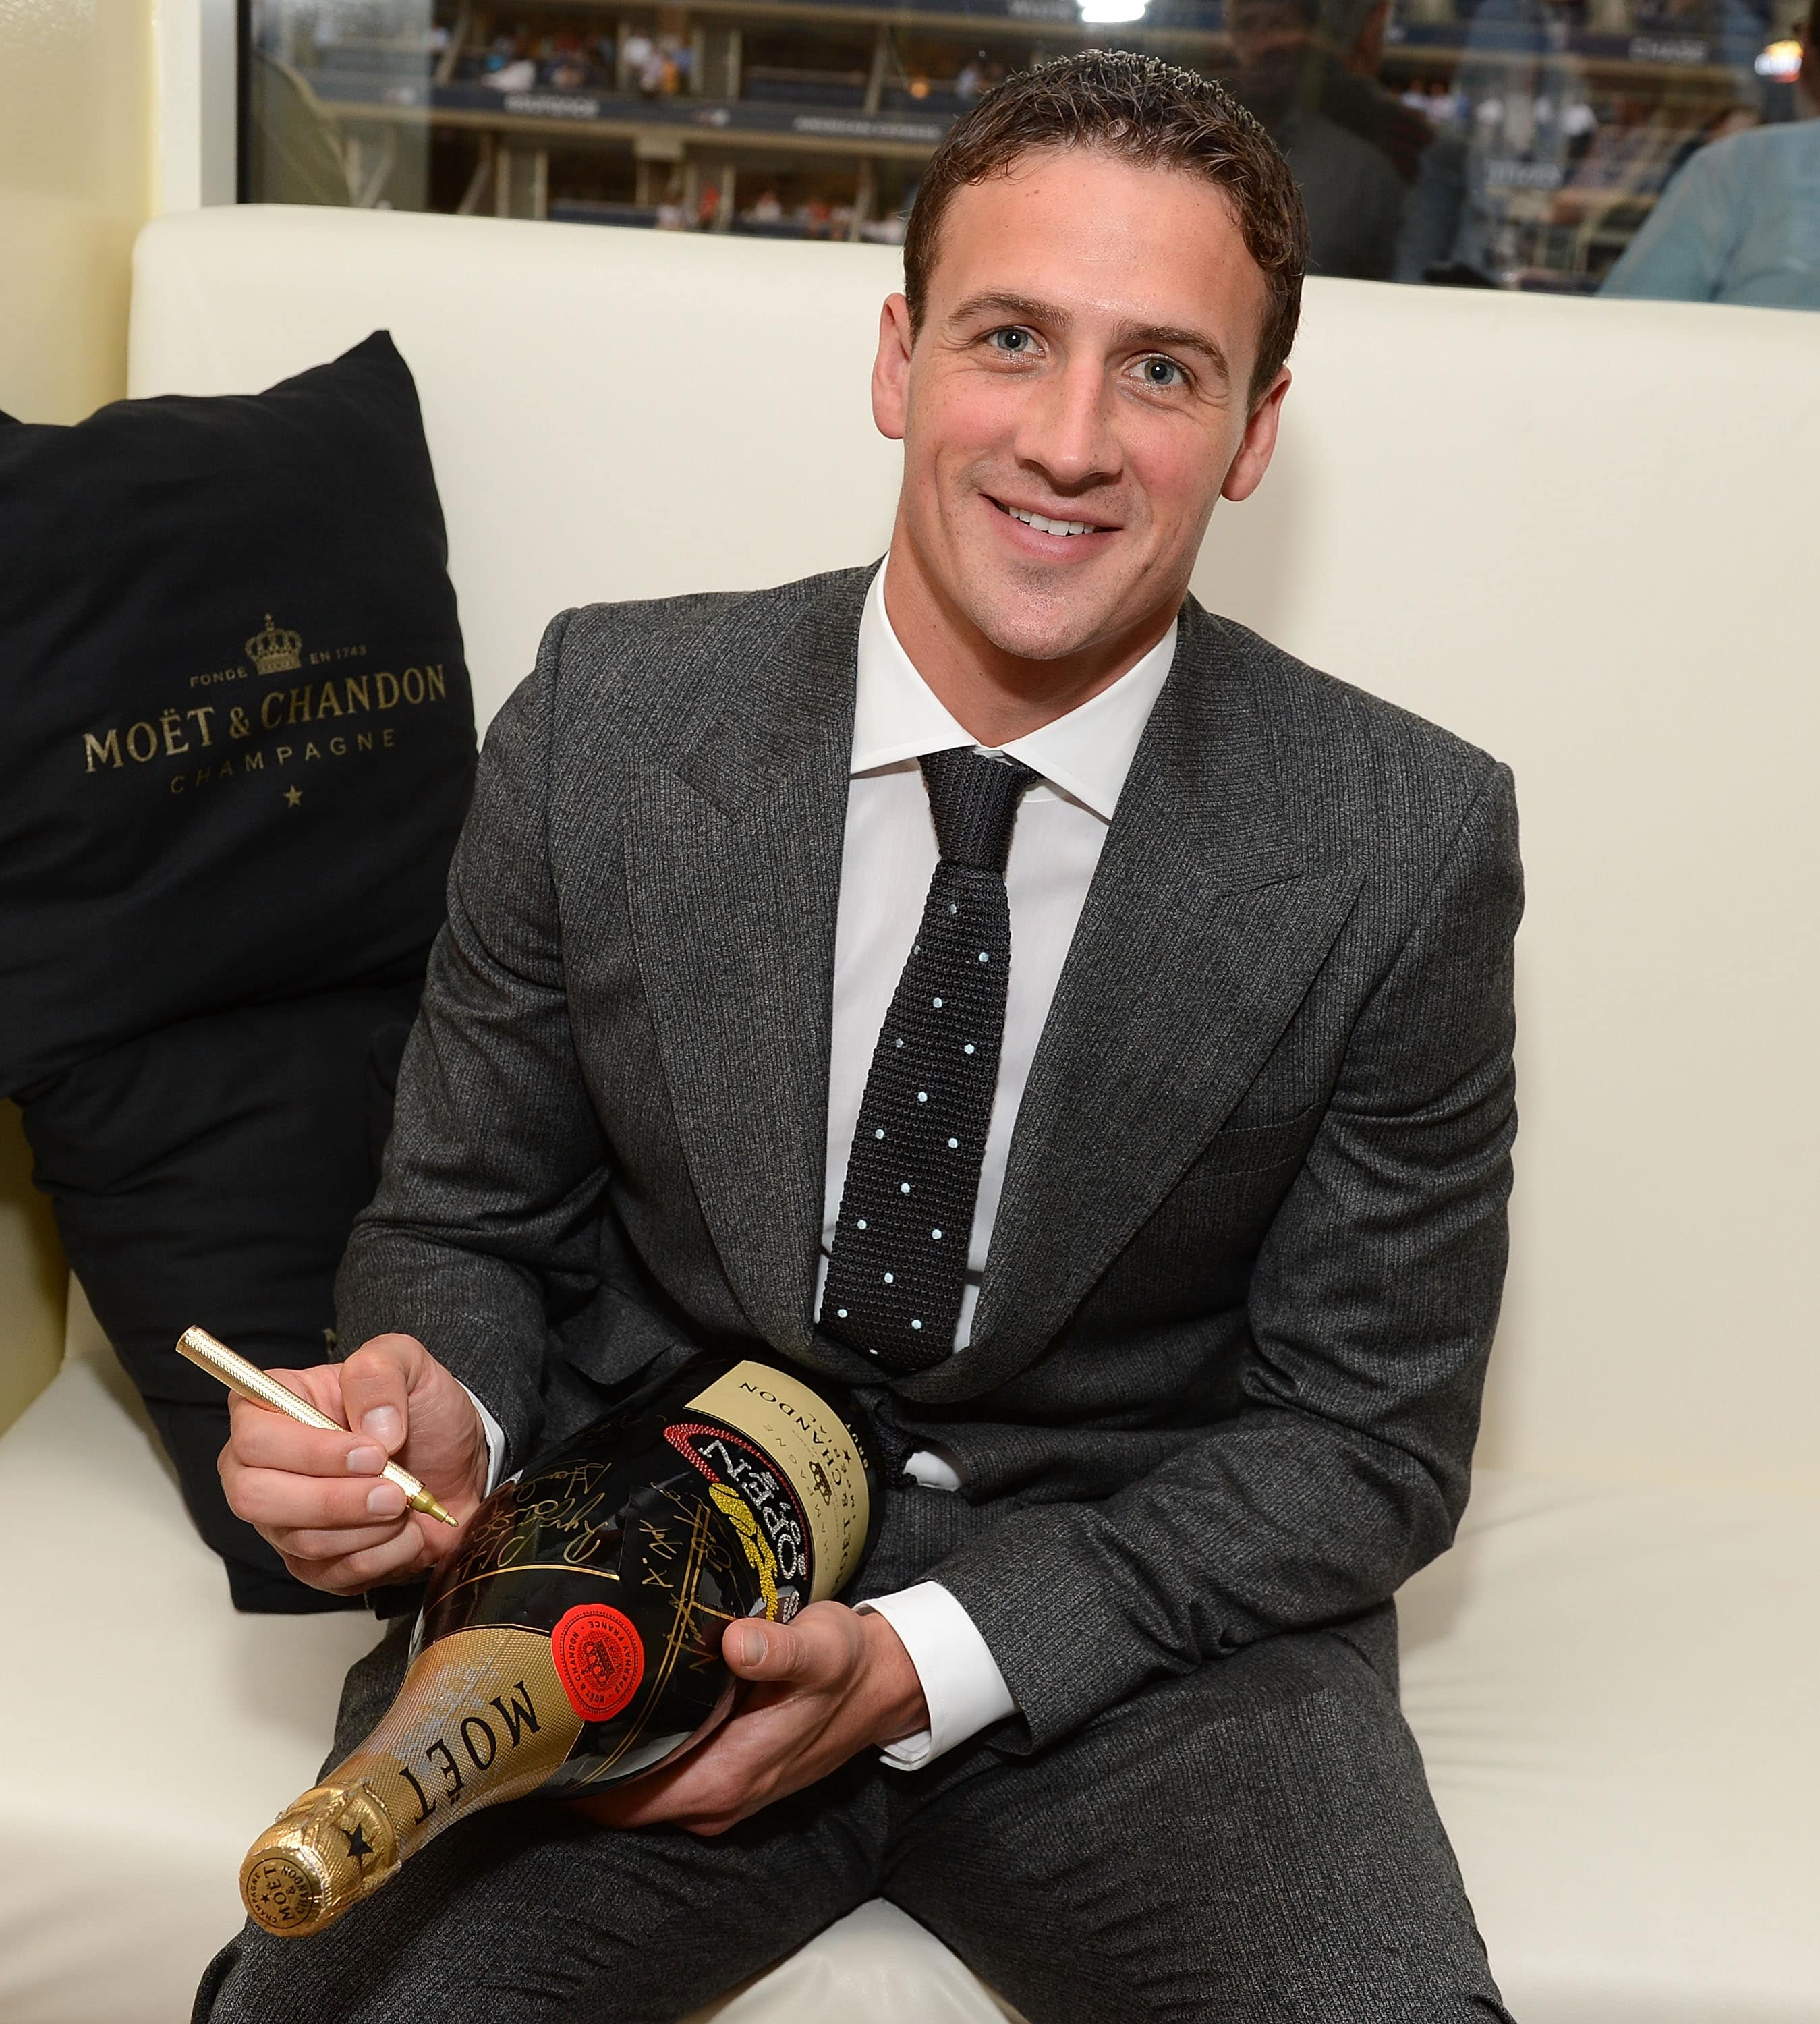 NEW YORK, NY - SEPTEMBER 05:  Swimmer Ryan Lochte visits the Moet & Chandon Suite at the 2012 US Open at the USTA Billie Jean King National Tennis Center on September 5, 2012 in the Flushing neighborhood of the Queens borough of New York City.  (Photo by Michael Kovac/Getty Images for Moet & Chandon)